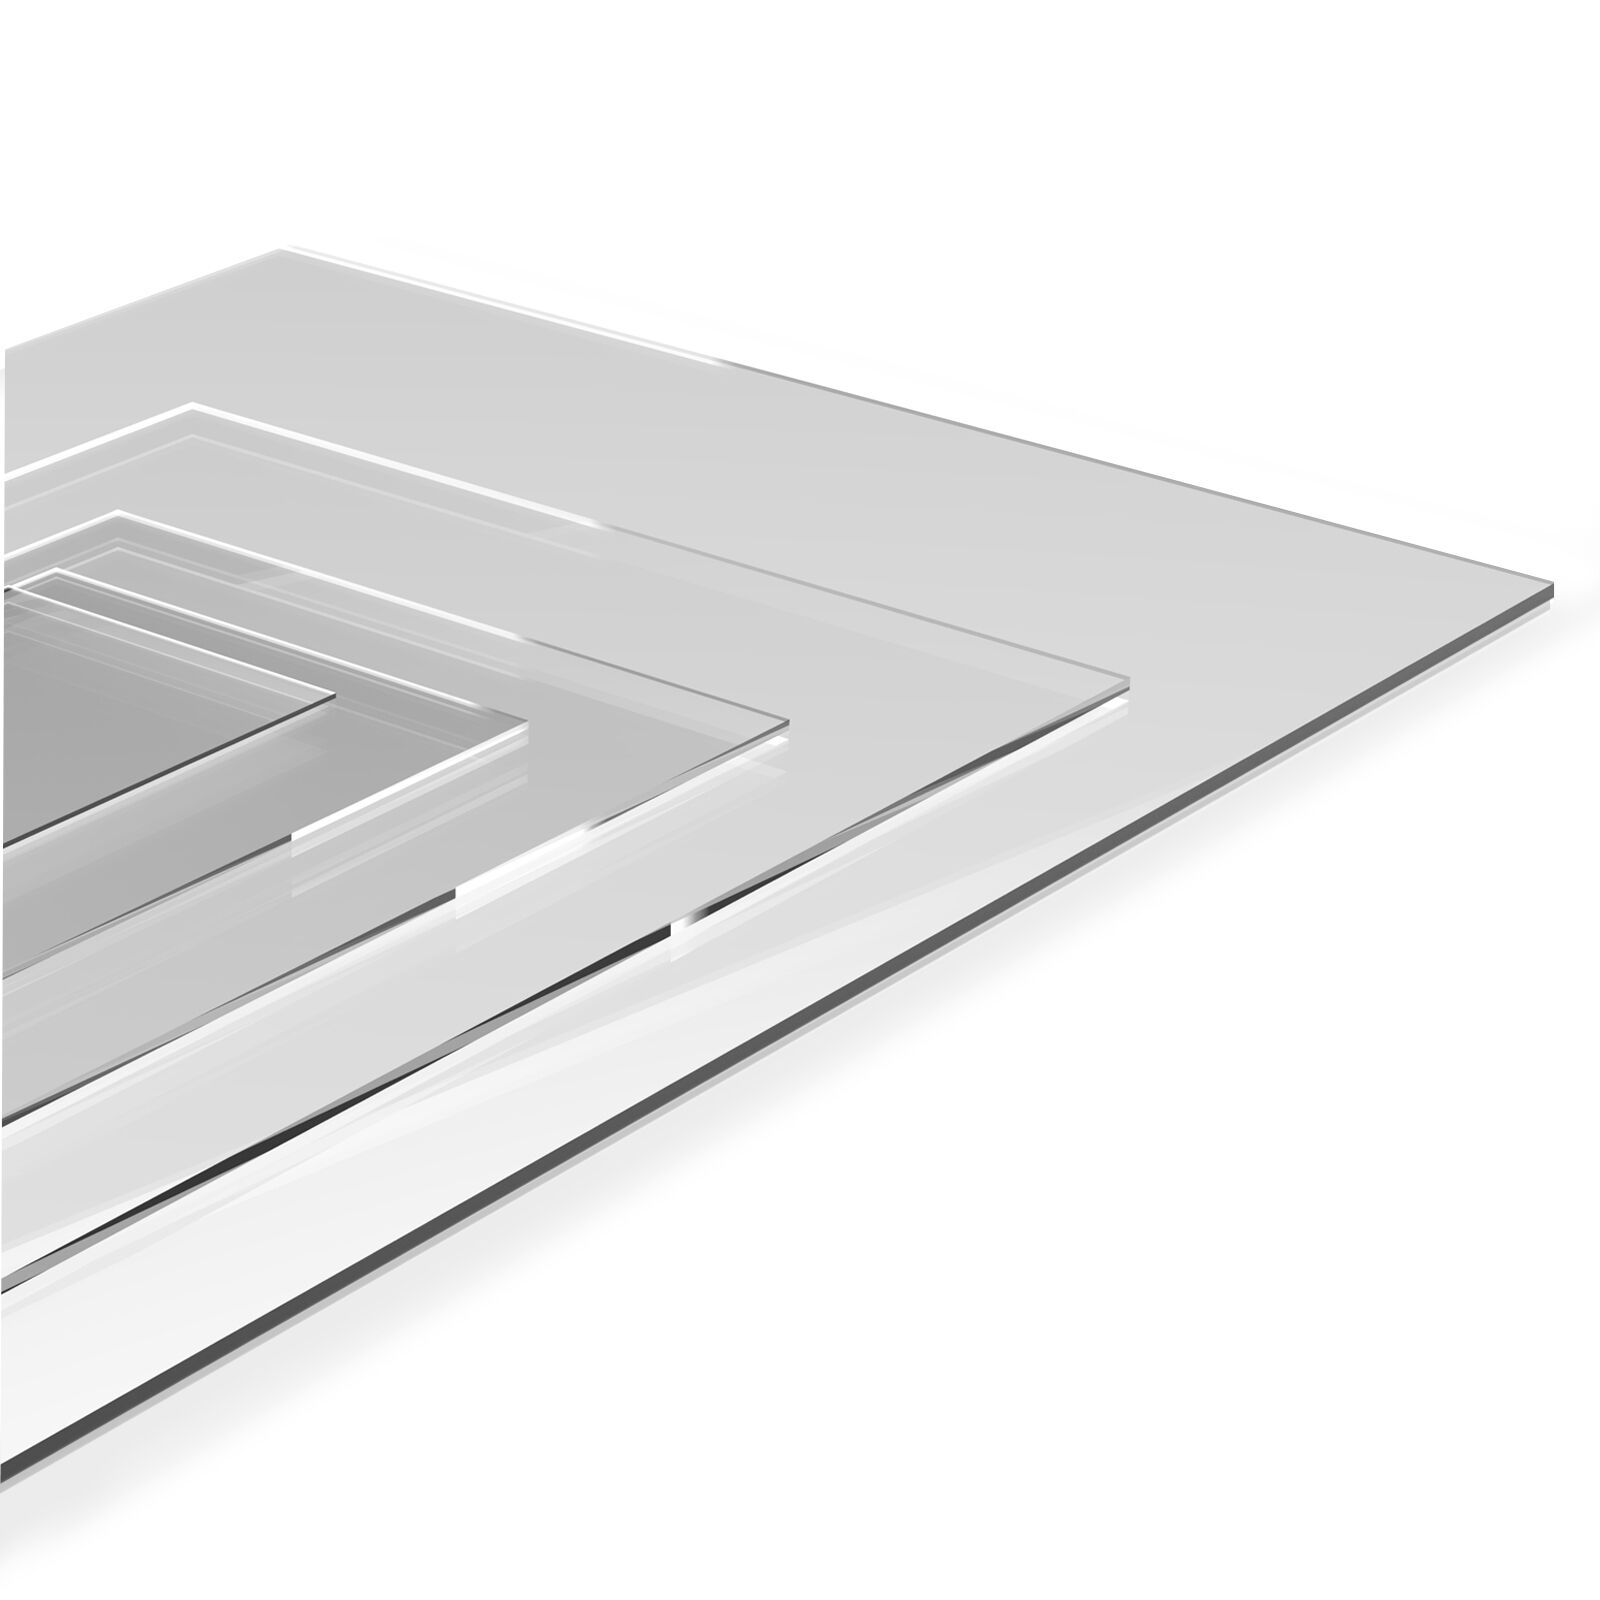 Clear Acrylic Perspex Plastic Sheet - Custom Sizes 2mm - 6mm Thick Material